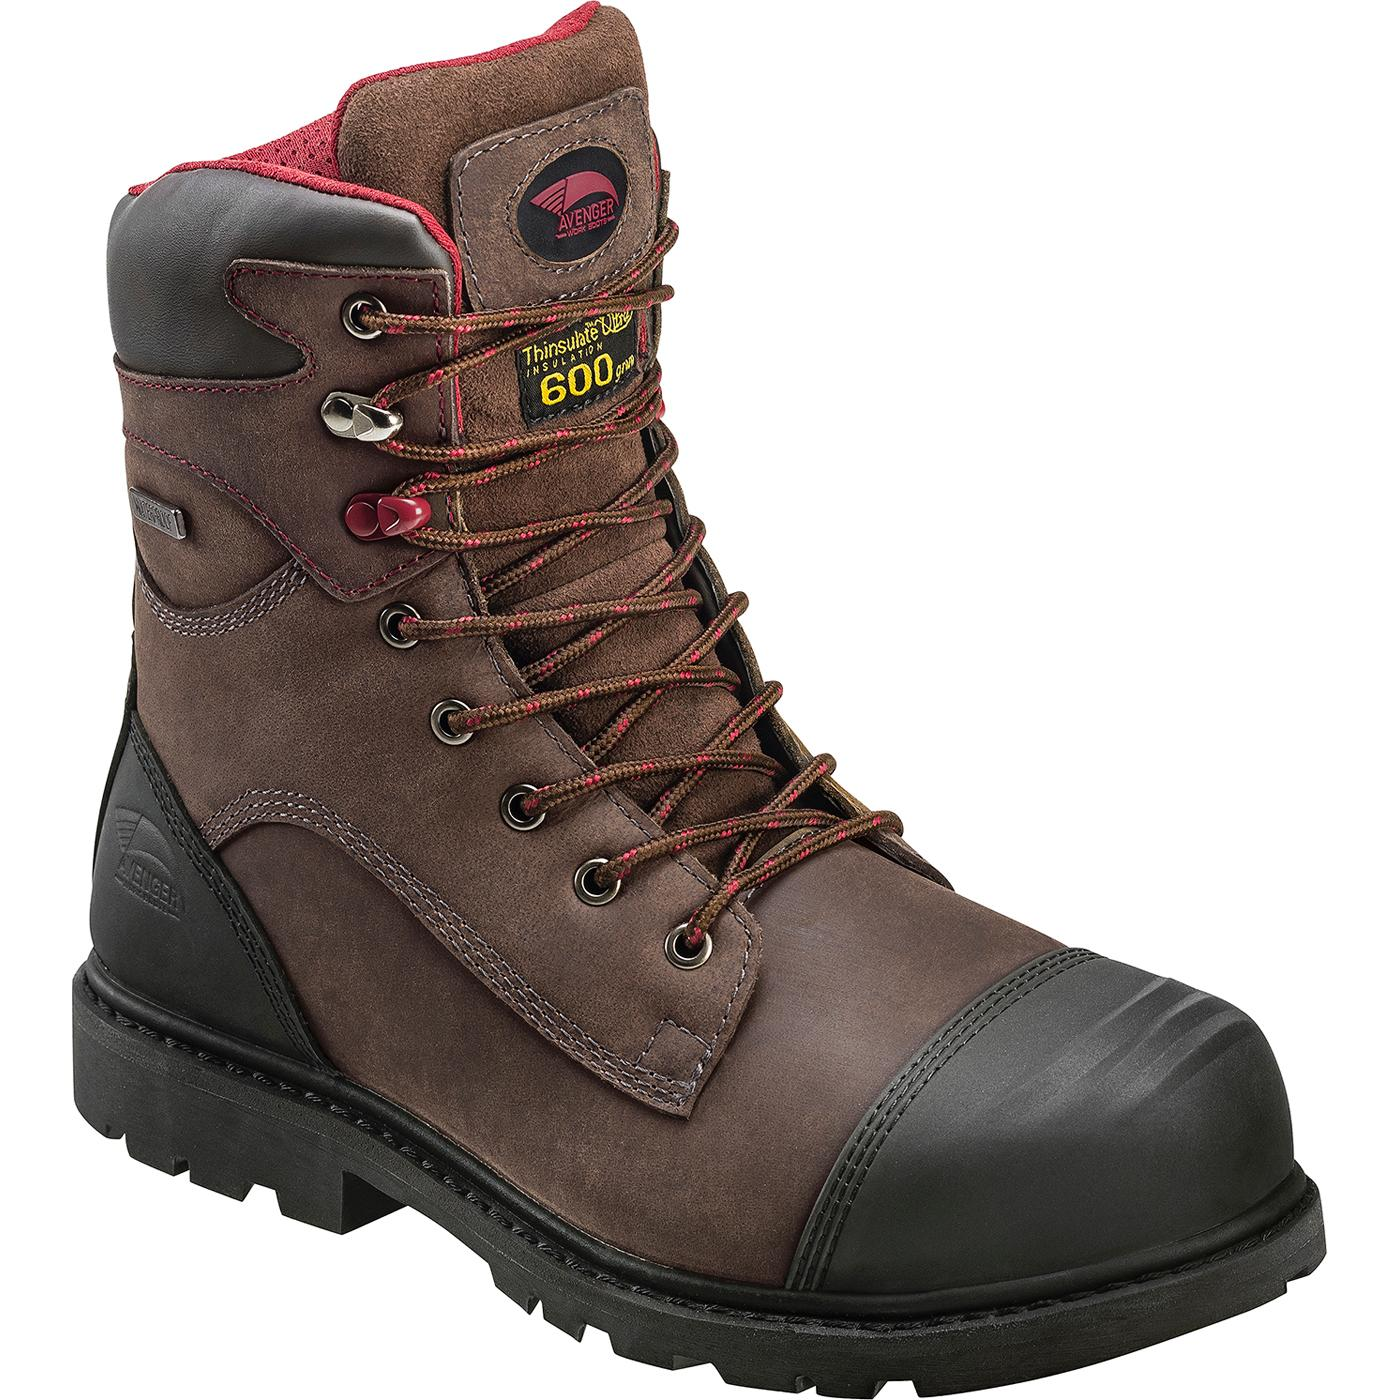 e1de3127981 Avenger Carbon Fiber Toe Puncture-Resistant Waterproof 600g Insulated Work  Boot